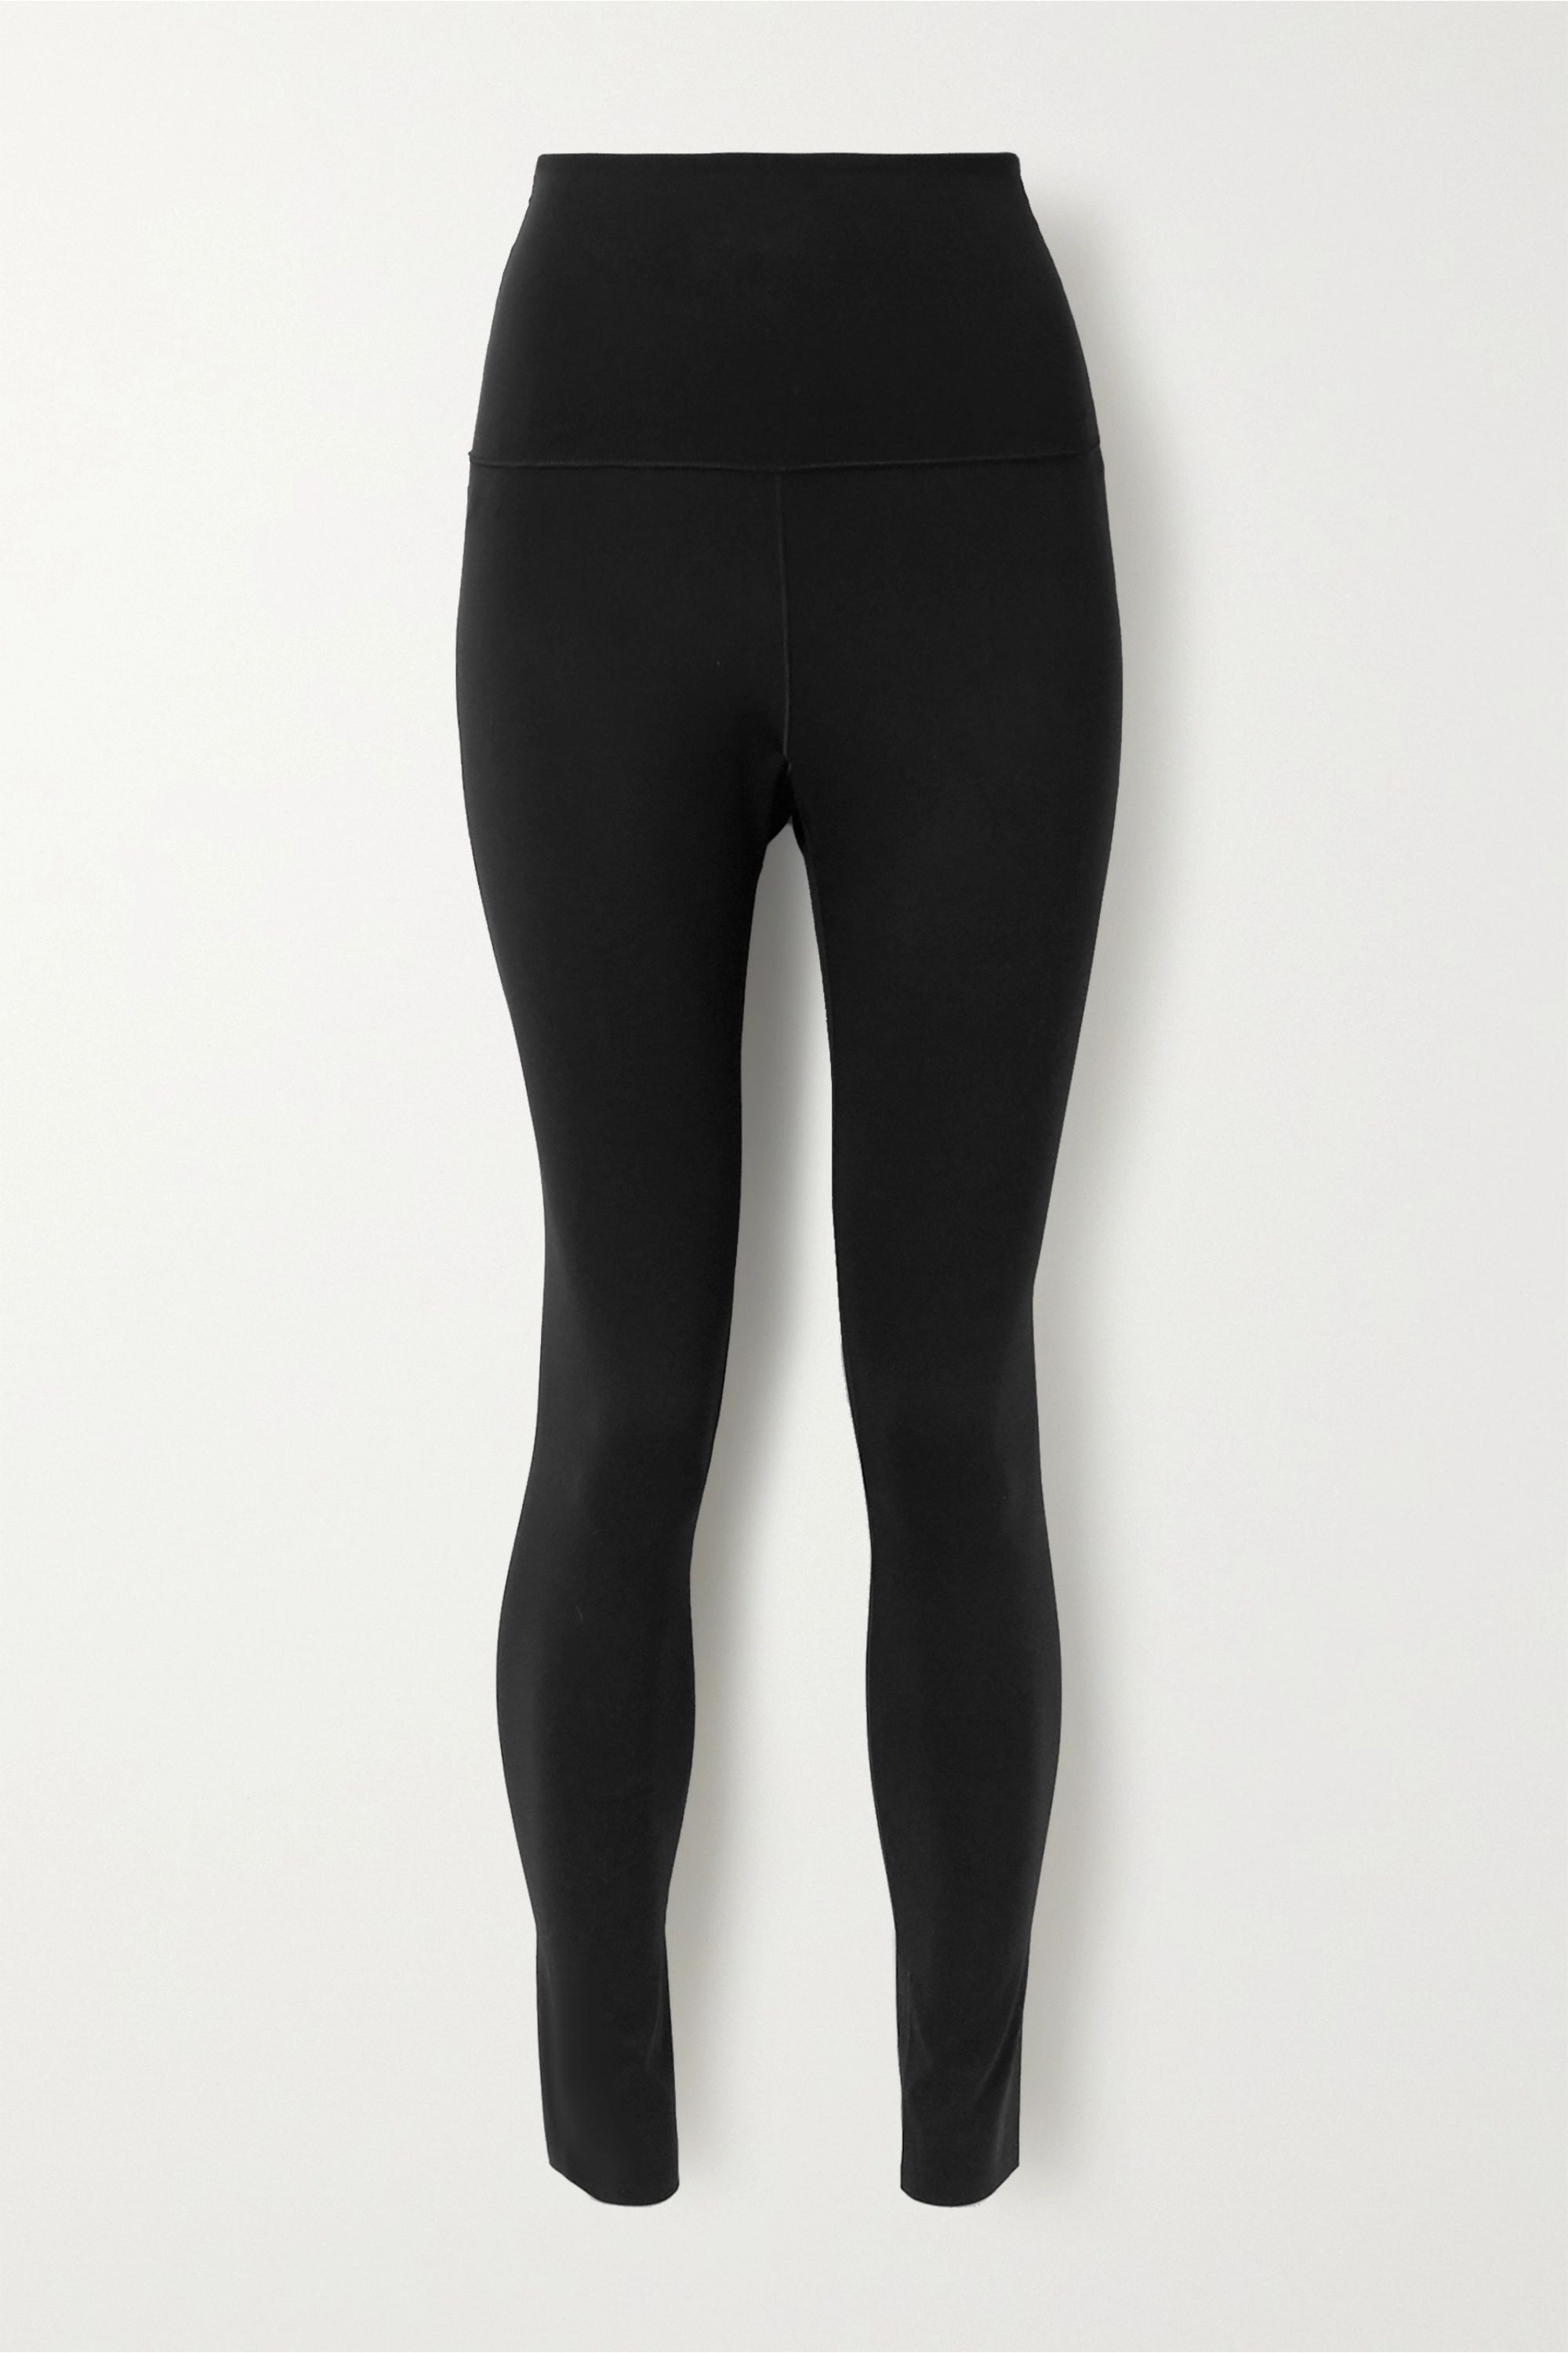 WONE Contour stretch leggings